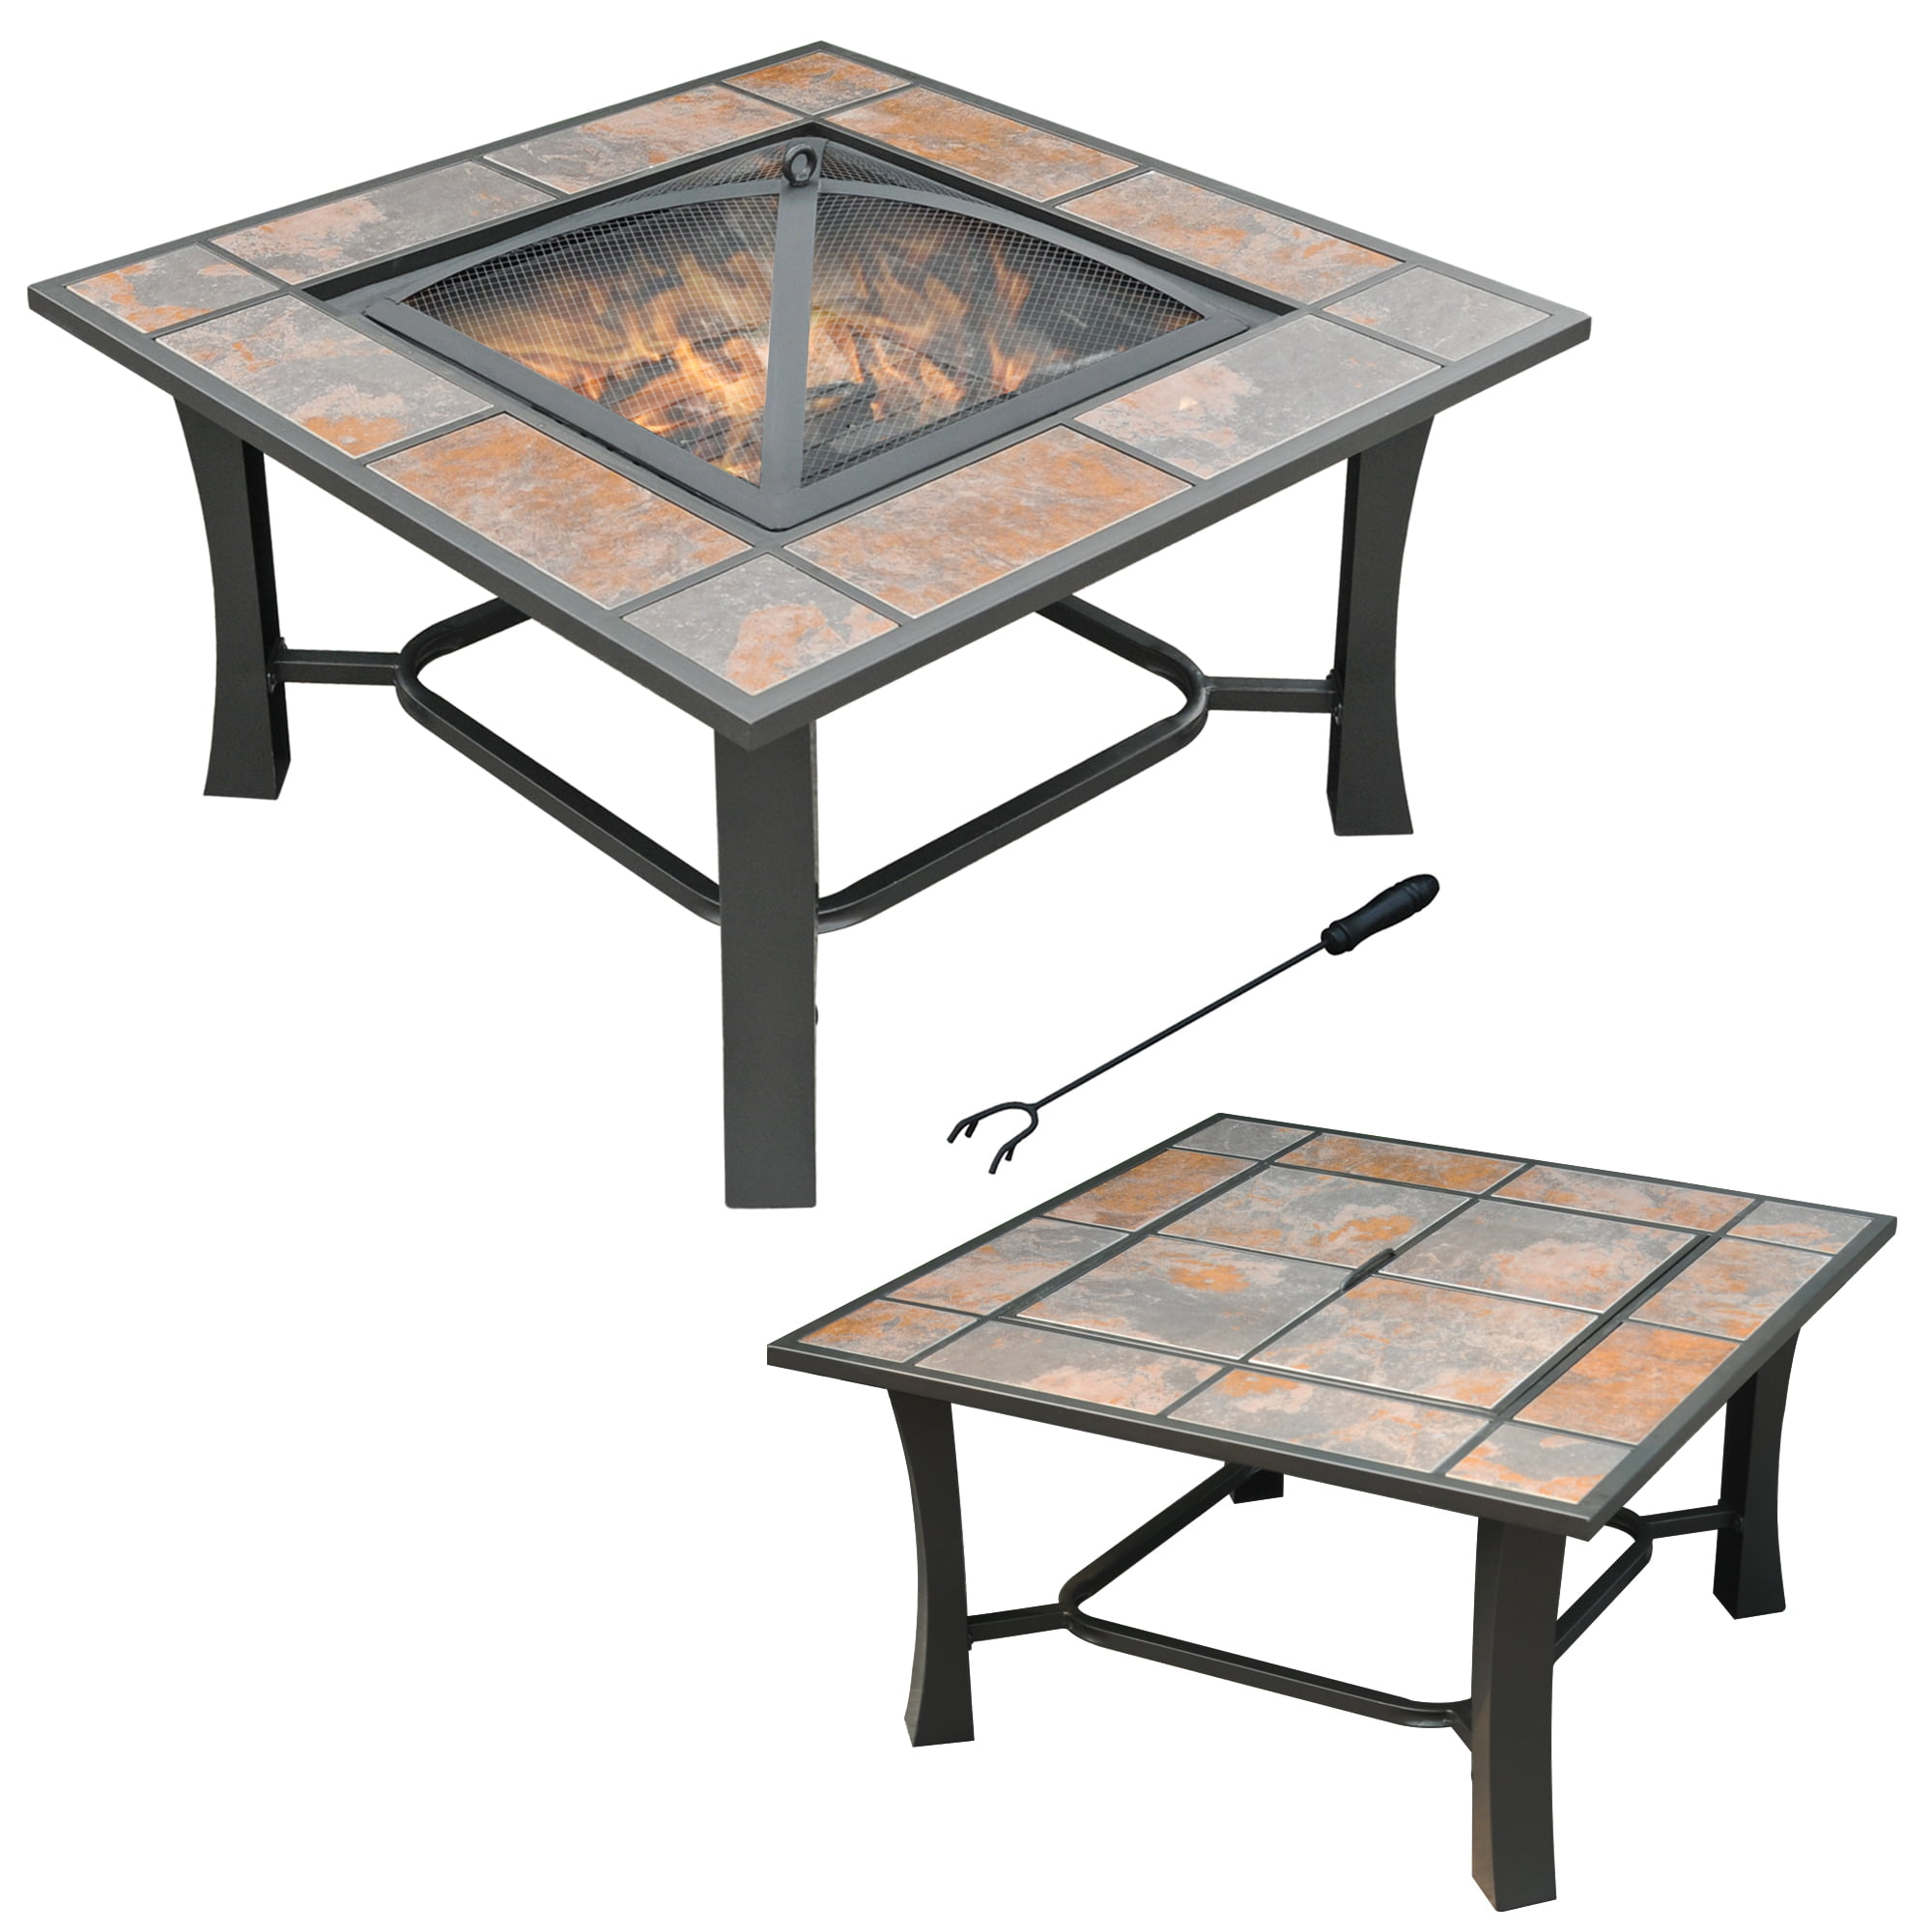 Axxonn 32 2 In 1 Malaga Convertible Square Tile Top Fire Pit Coffee Table Wood Burning Fire Bowl Walmart Com Walmart Com